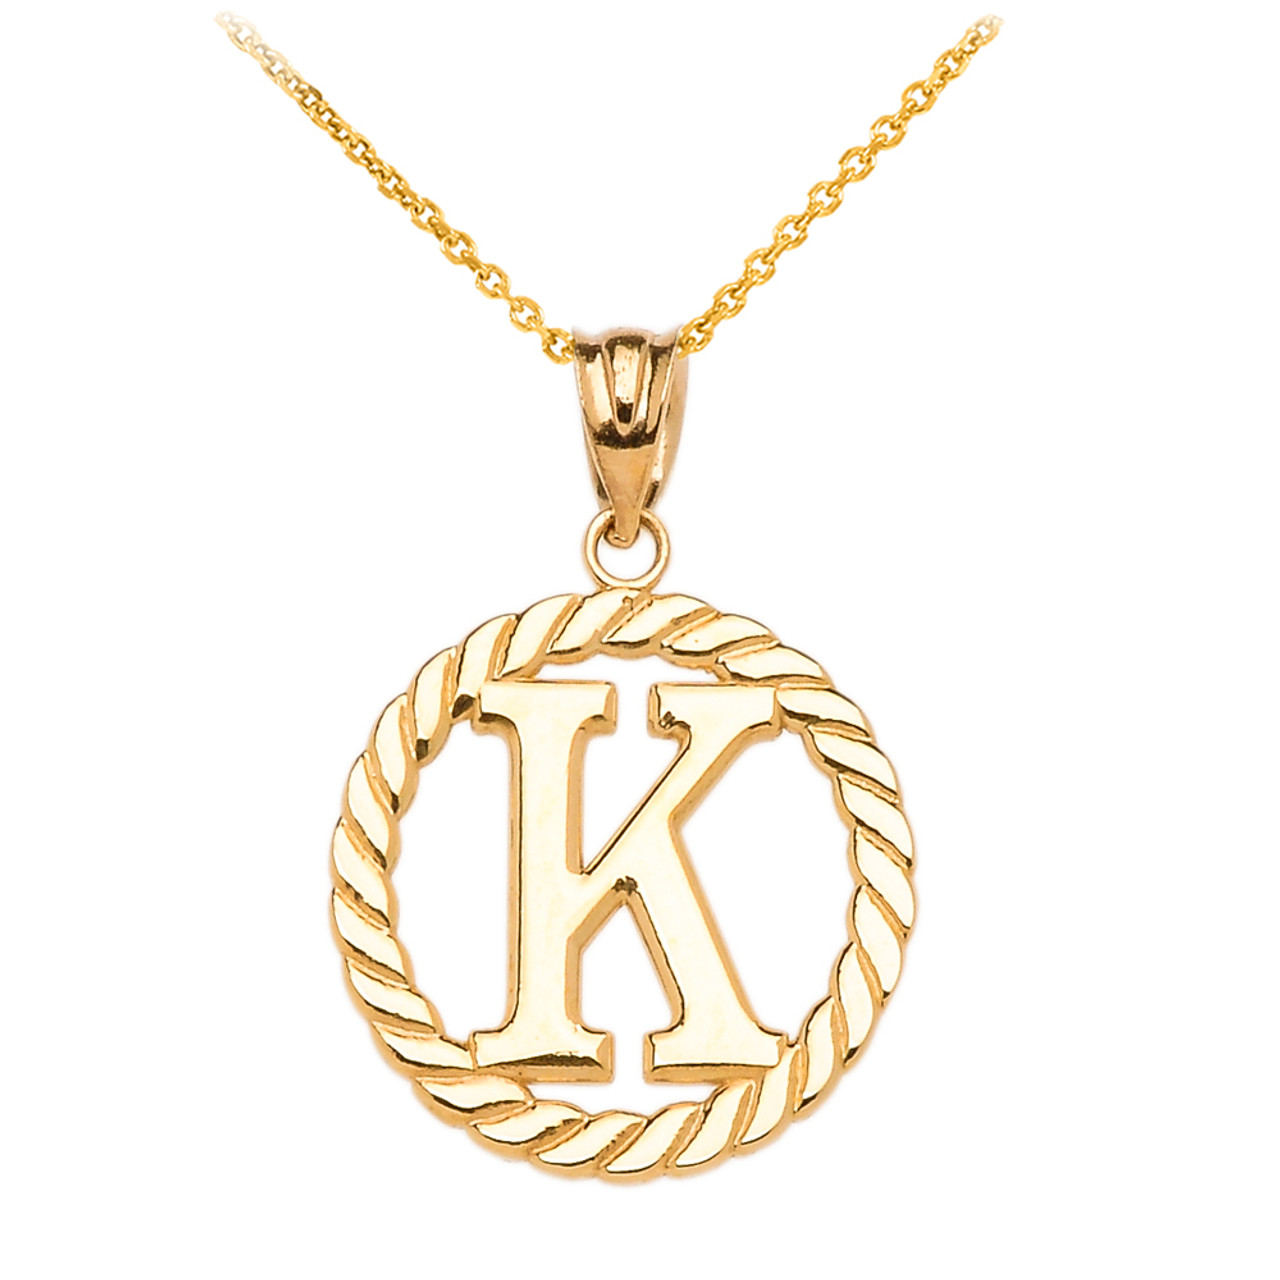 Gold k initial in rope circle pendant necklace yellow gold k initial in rope circle pendant necklace mozeypictures Choice Image